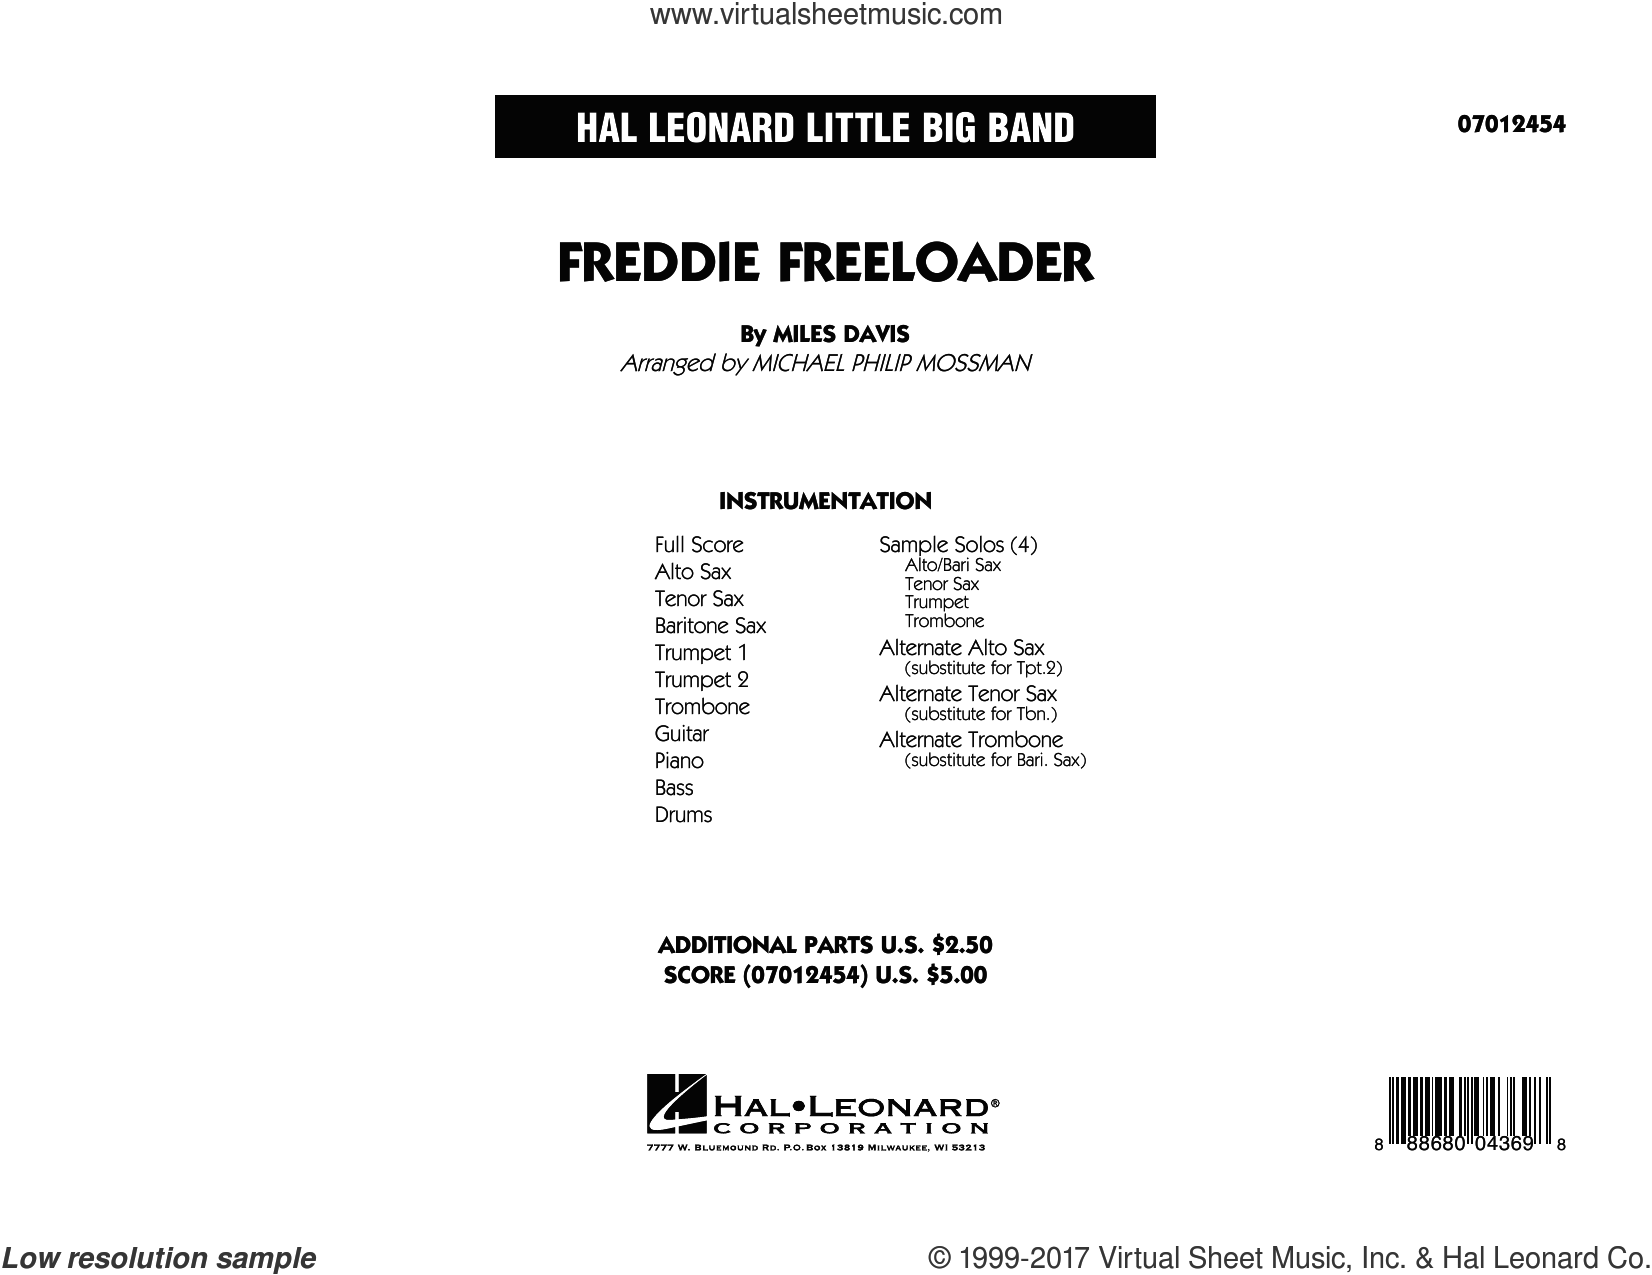 Freddie Freeloader (COMPLETE) sheet music for jazz band by Miles Davis and Michael Philip Mossman, intermediate skill level